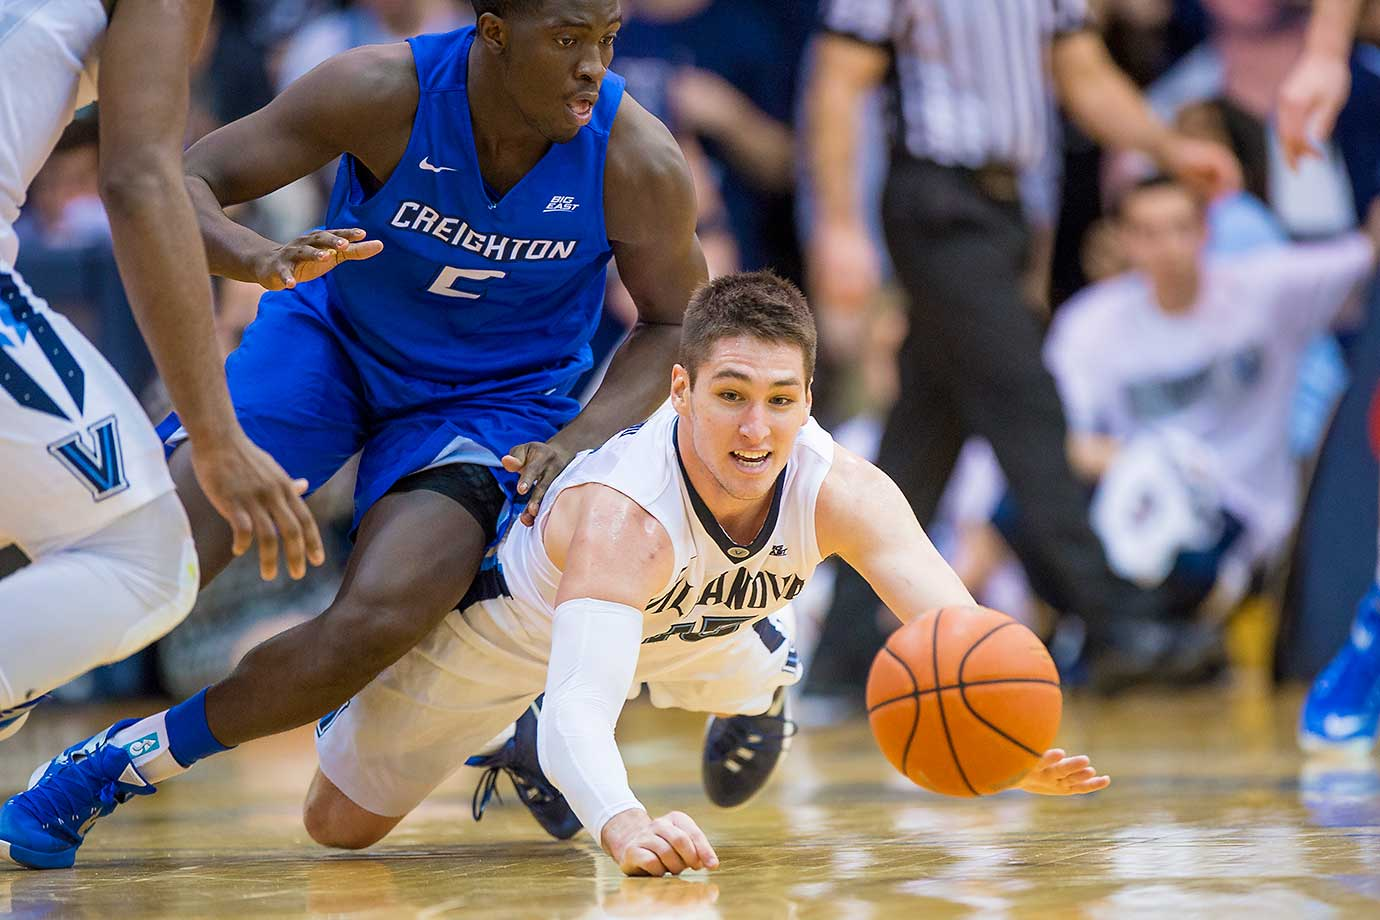 Villanova Wildcats guard Ryan Arcidiacono dives after the loose ball during a game against the Creighton Bluejays at the Pavilion in Villanova, Penn.